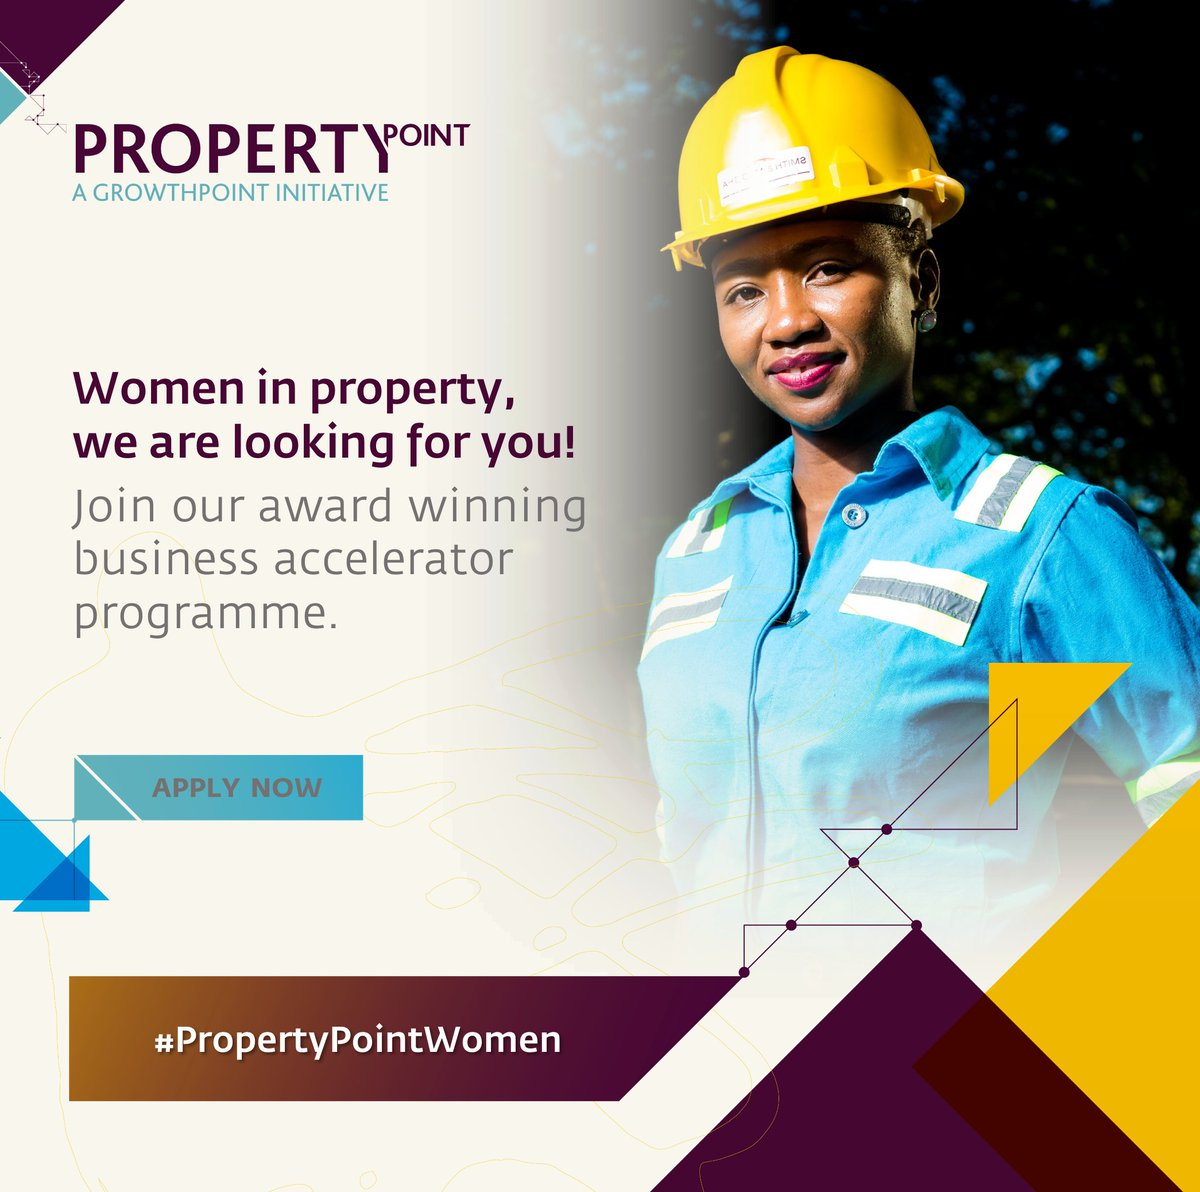 We are looking for 15 women lead businesses in the property sector from Johannesburg, Cape Town & KwaZulu-Natal to take to the next level! https://t.co/pfsgmssQmL